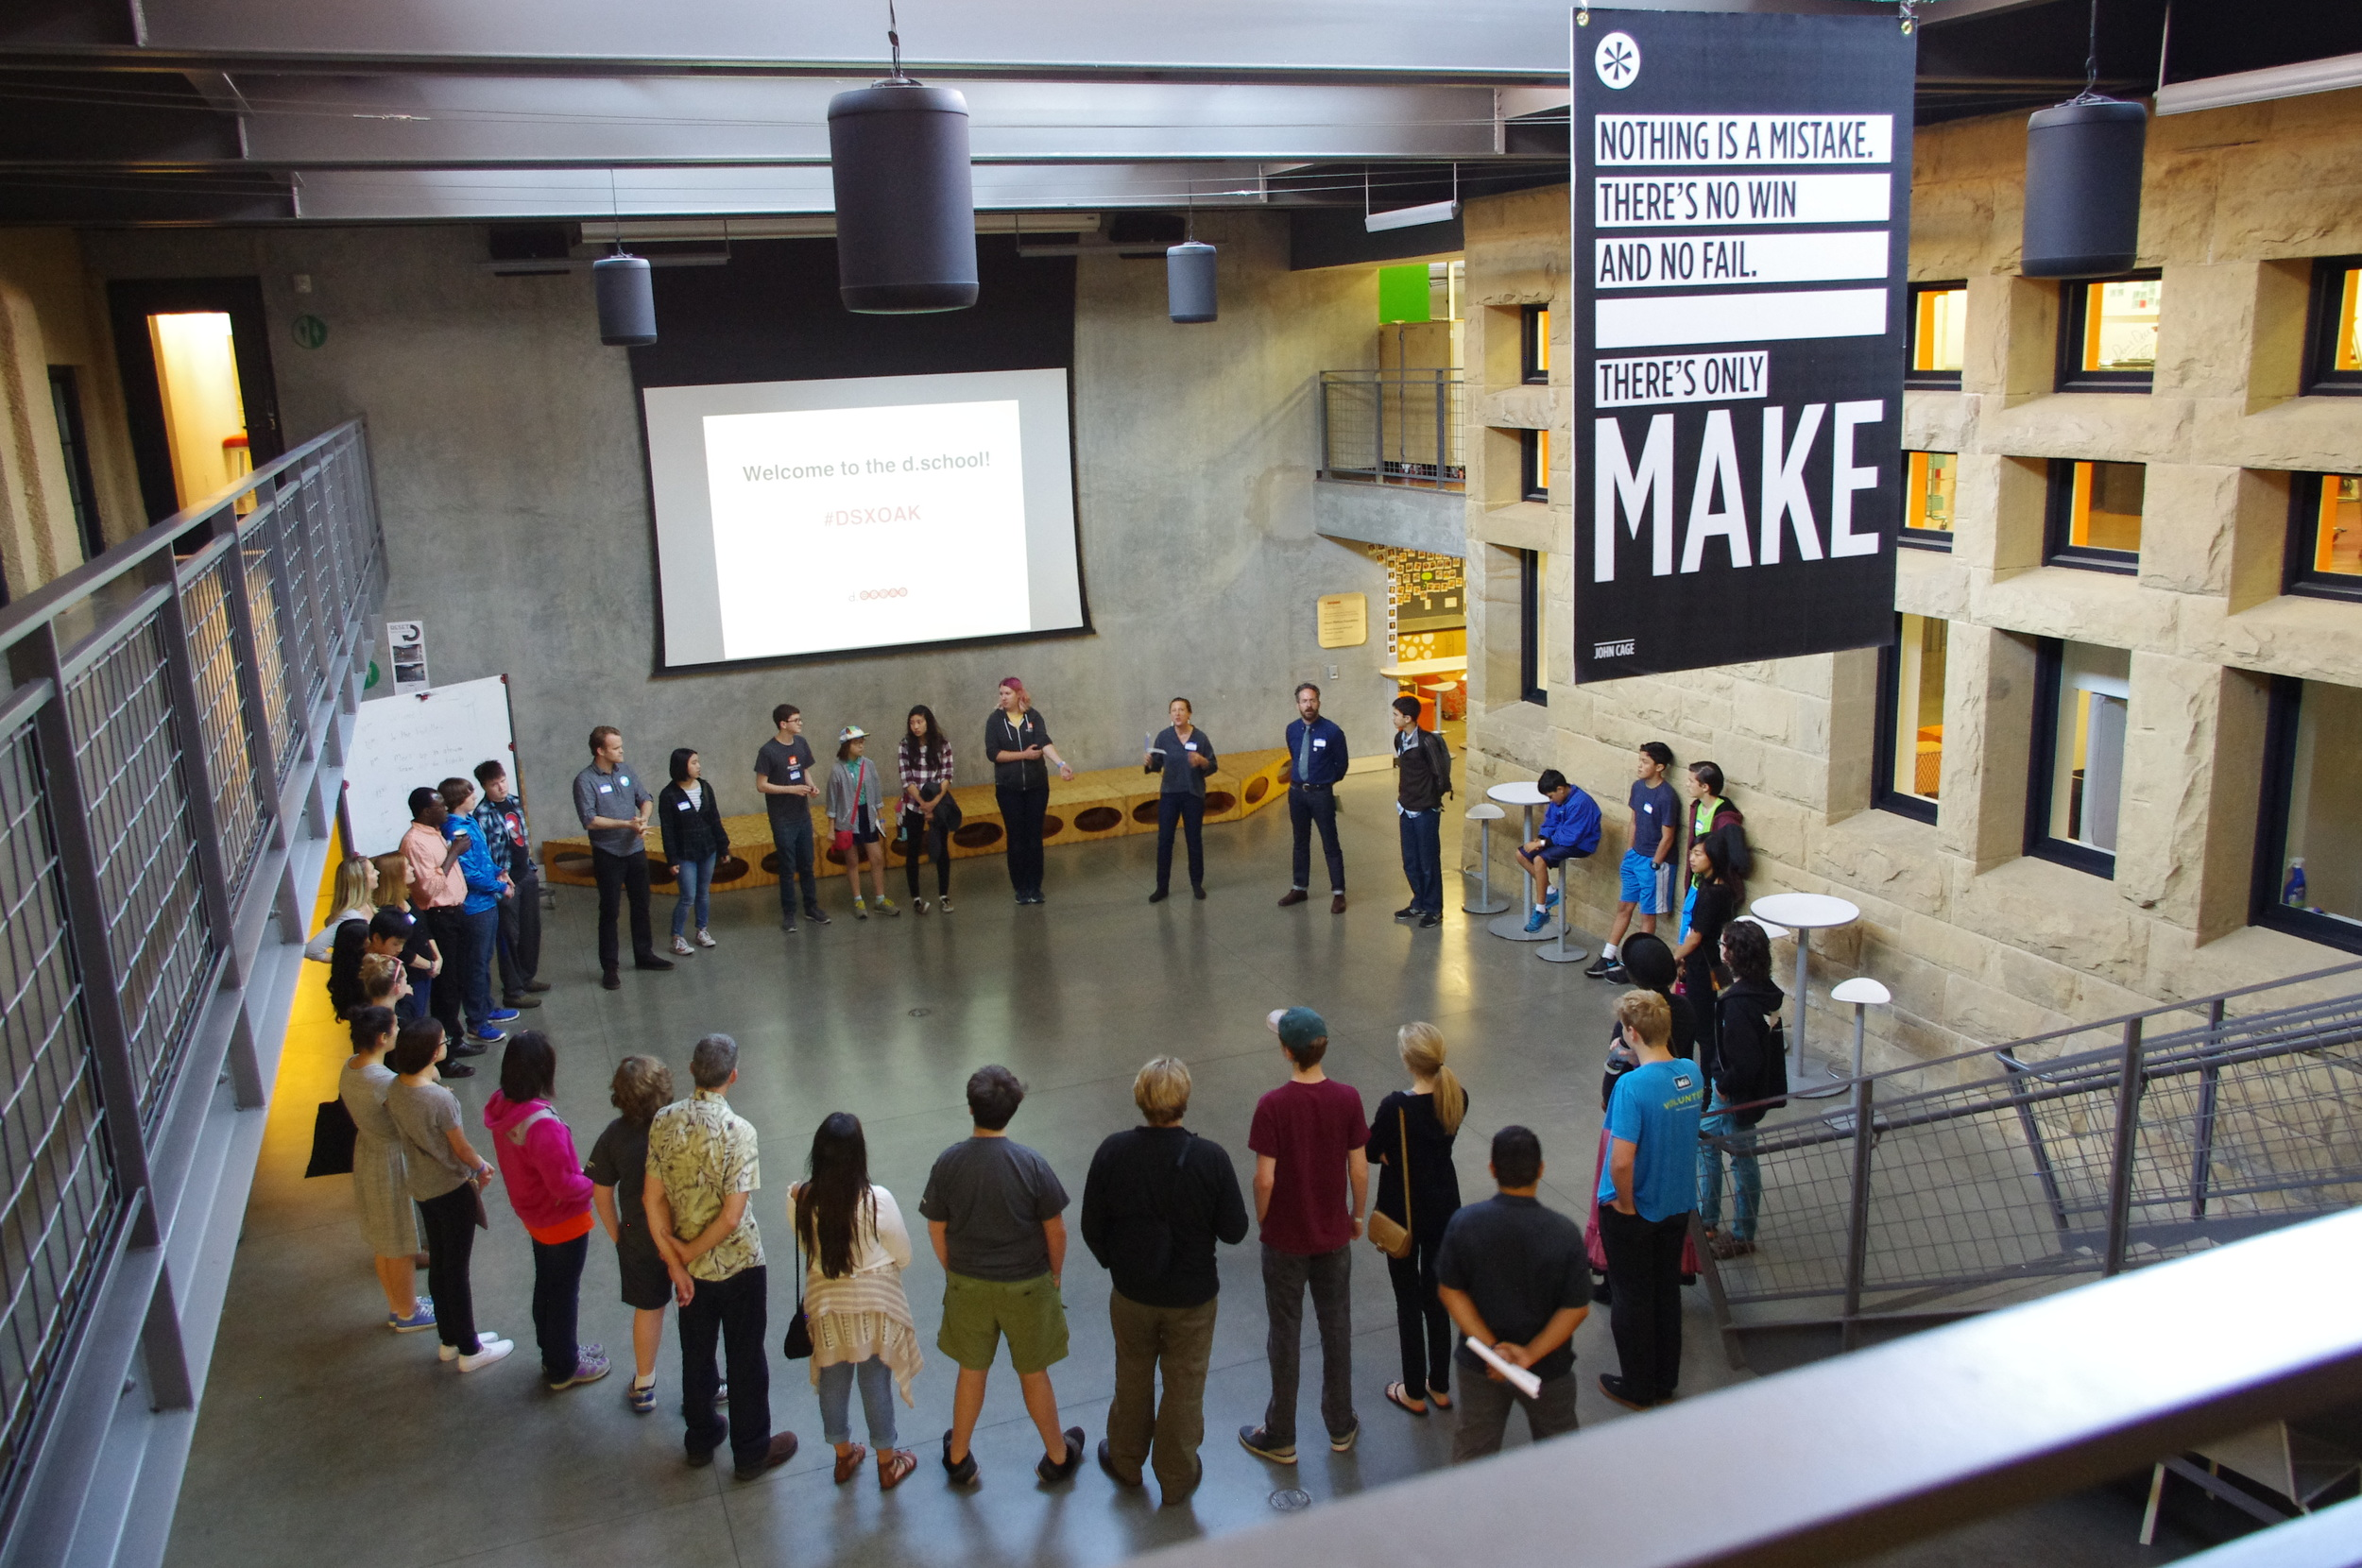 Students, facilitators, d.school fellows and instructors gather for Protopalooza in the d.school atrium this past spring. The event was hosted by d.school fellows David Clifford and Tim Shriver to guide students through a series of exercises to redesign the high-school experience.